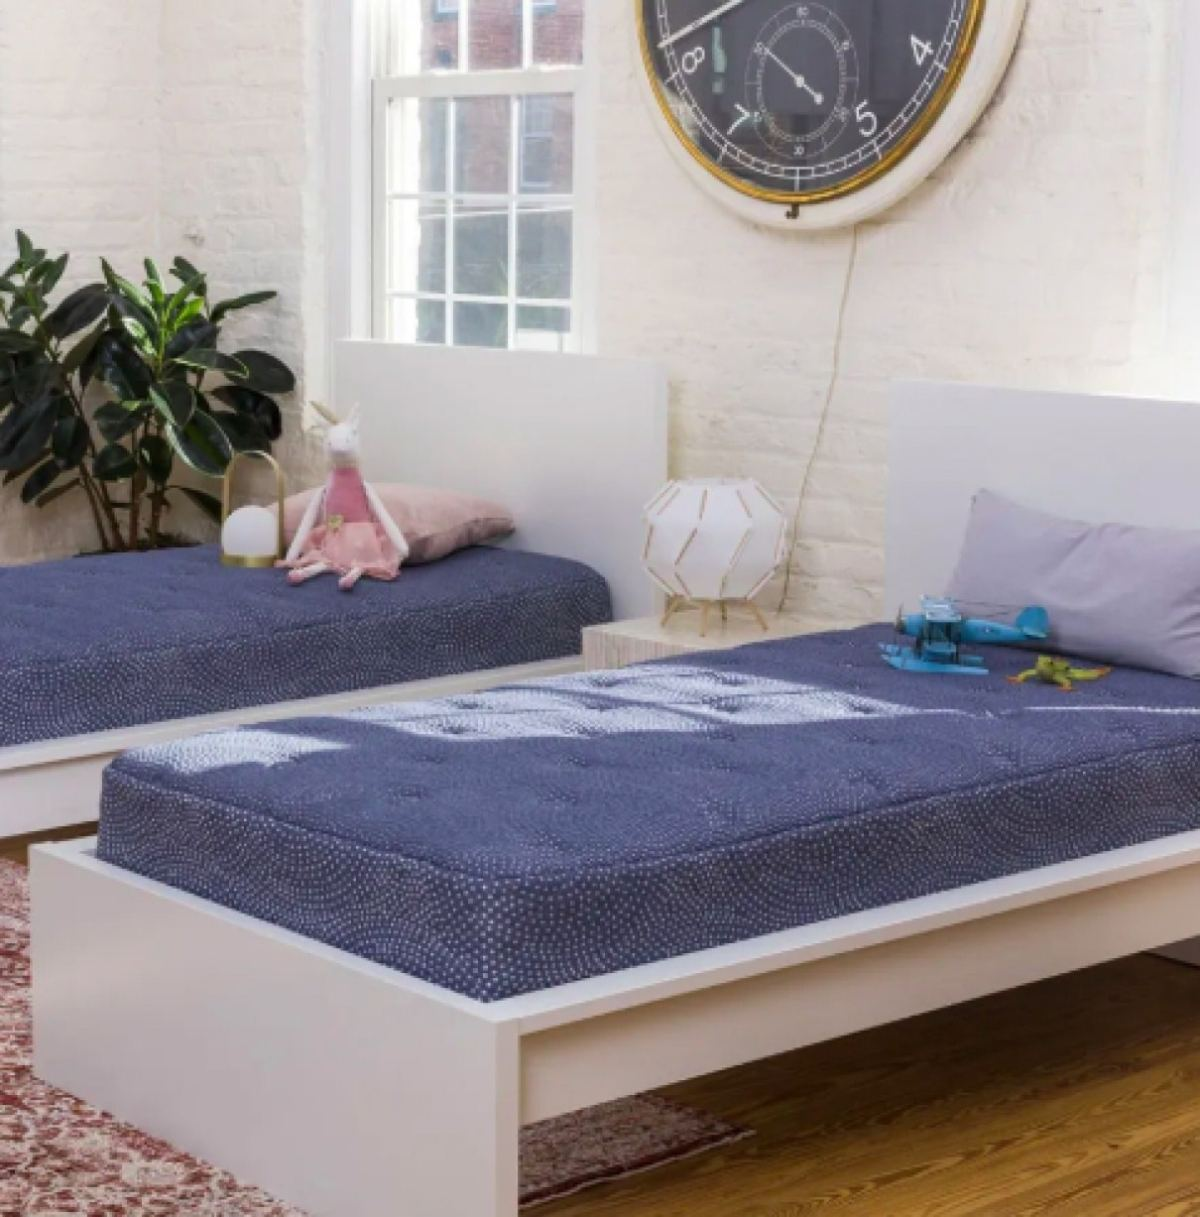 Luft Mattress review, Luft Childrens bed